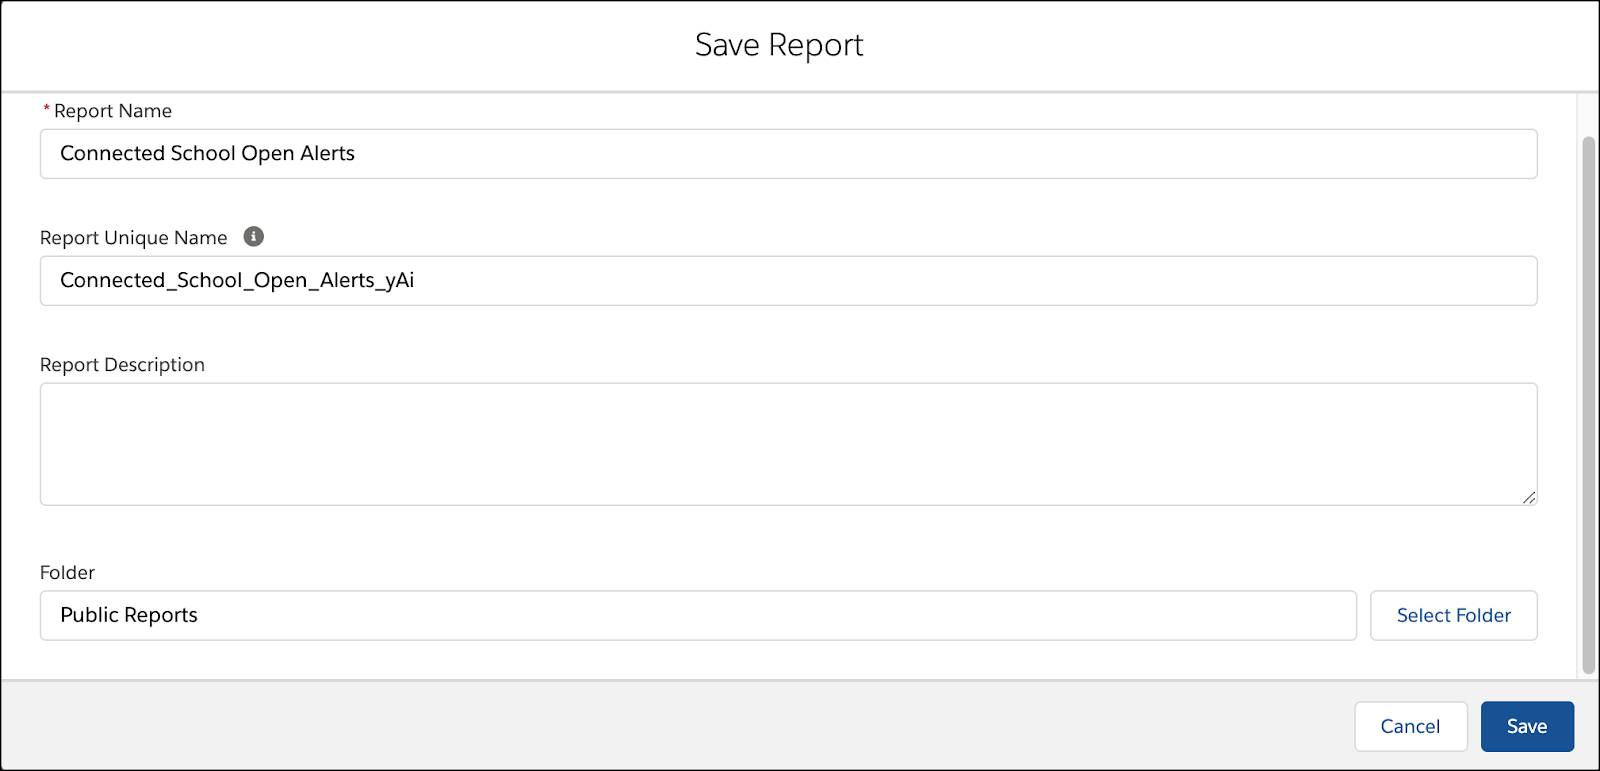 Save Report form